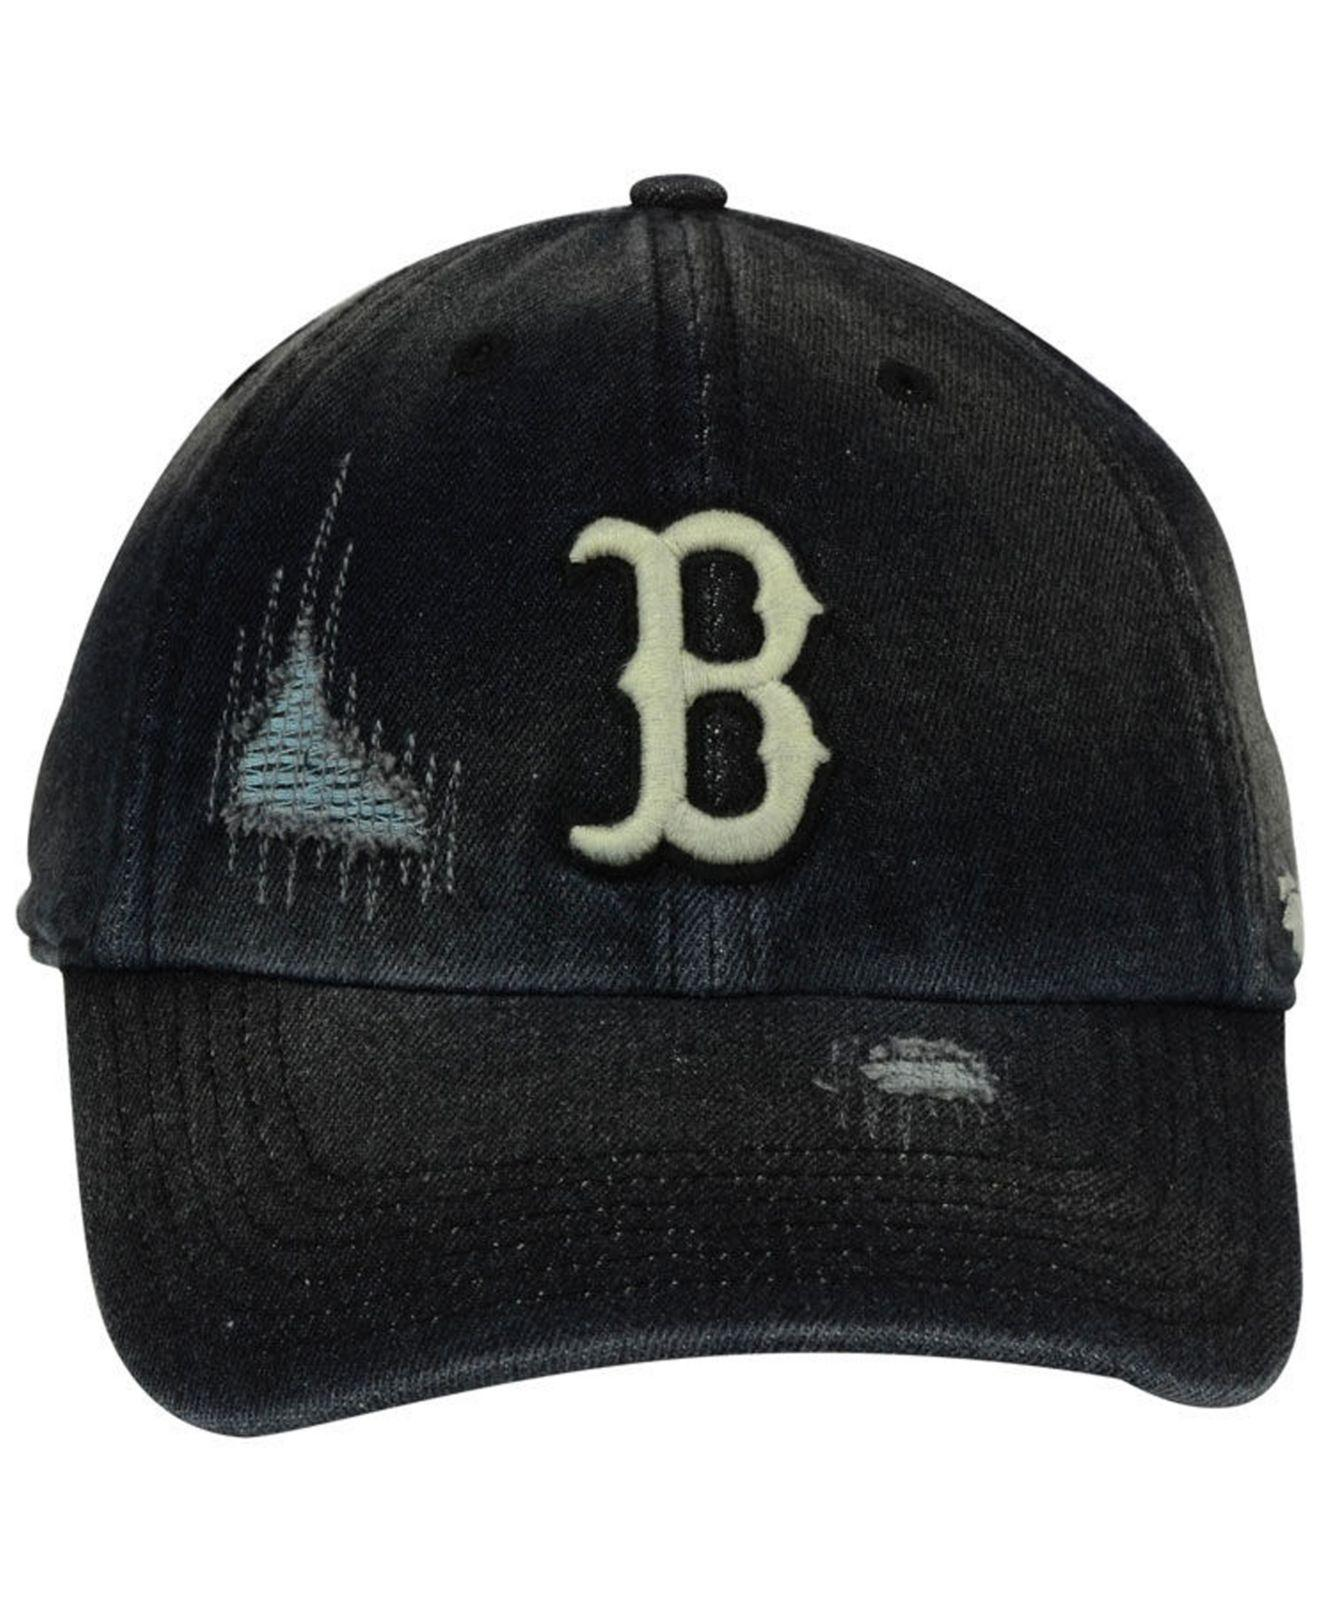 a30832ce discount code for lyst 47 brand boston red sox dark horse clean up cap in  black